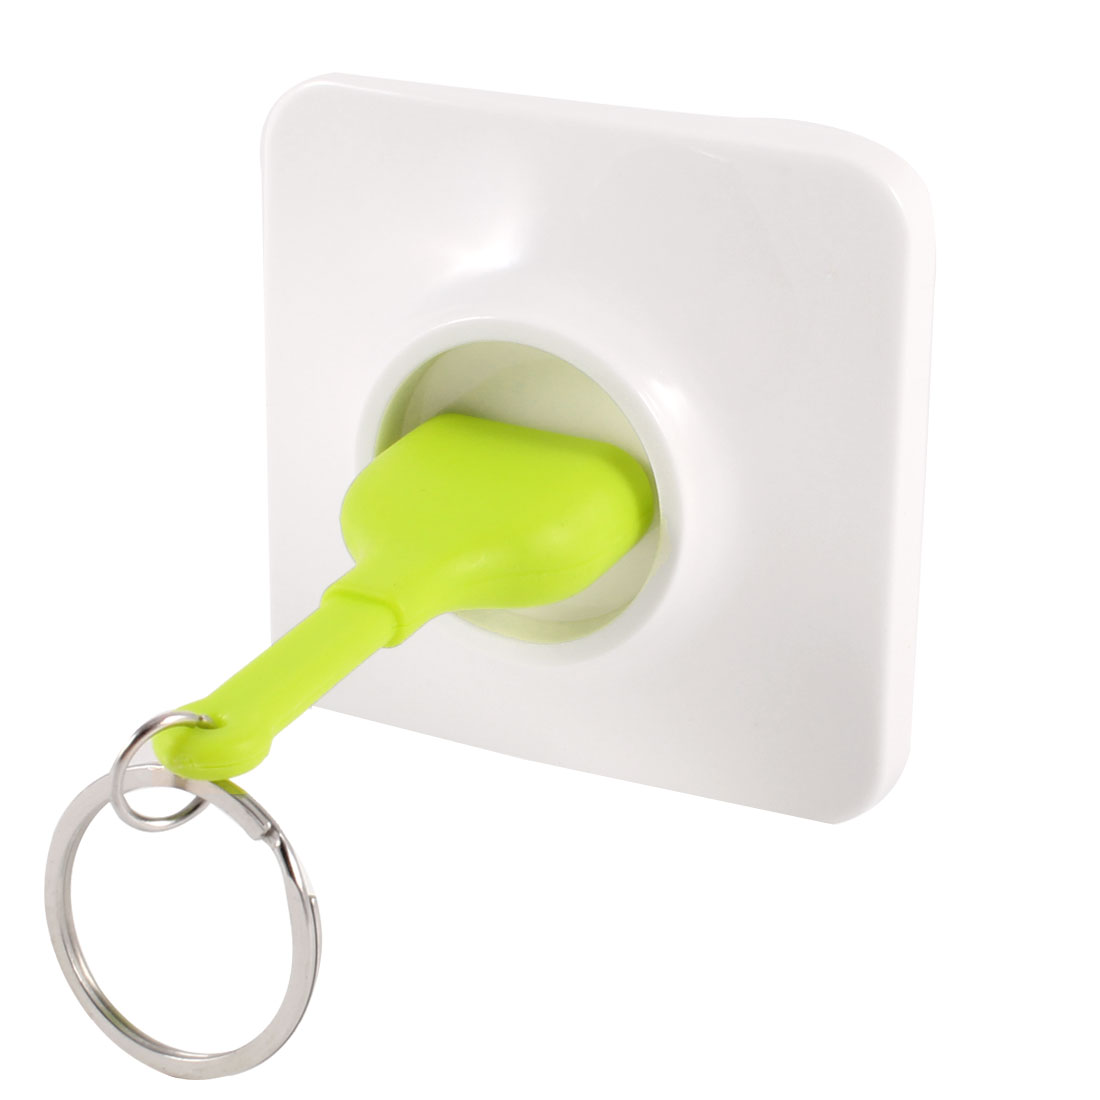 Wall Socket Design Unplug Keyring Keychain Key Holder White Green